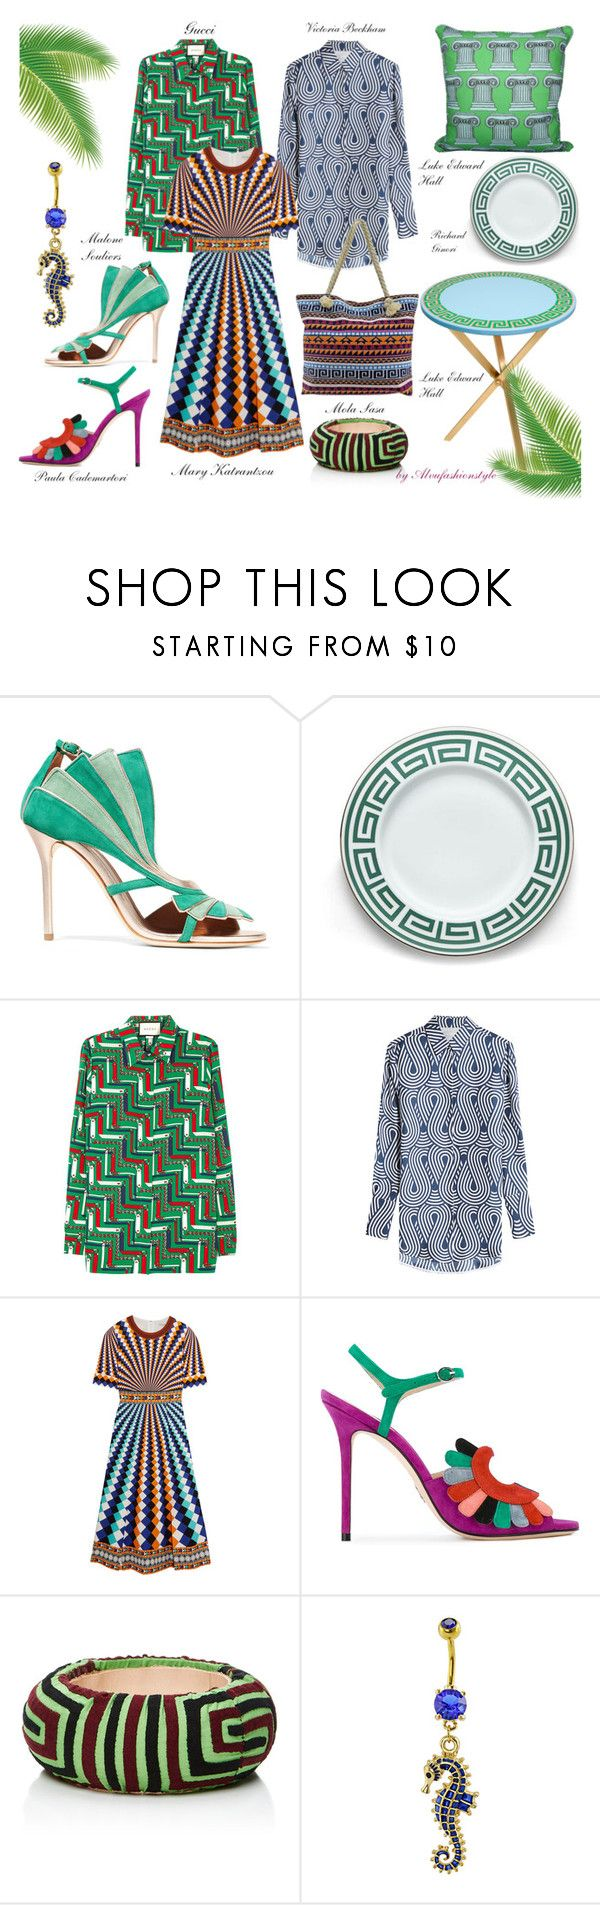 """Grecia stile mosaico"" by alvufashionstyle ❤ liked on Polyvore featuring Malone Souliers, Luke Edward Hall, Richard Ginori, Gucci, Victoria, Victoria Beckham, Mary Katrantzou, Paula Cademartori and Mola SaSa"